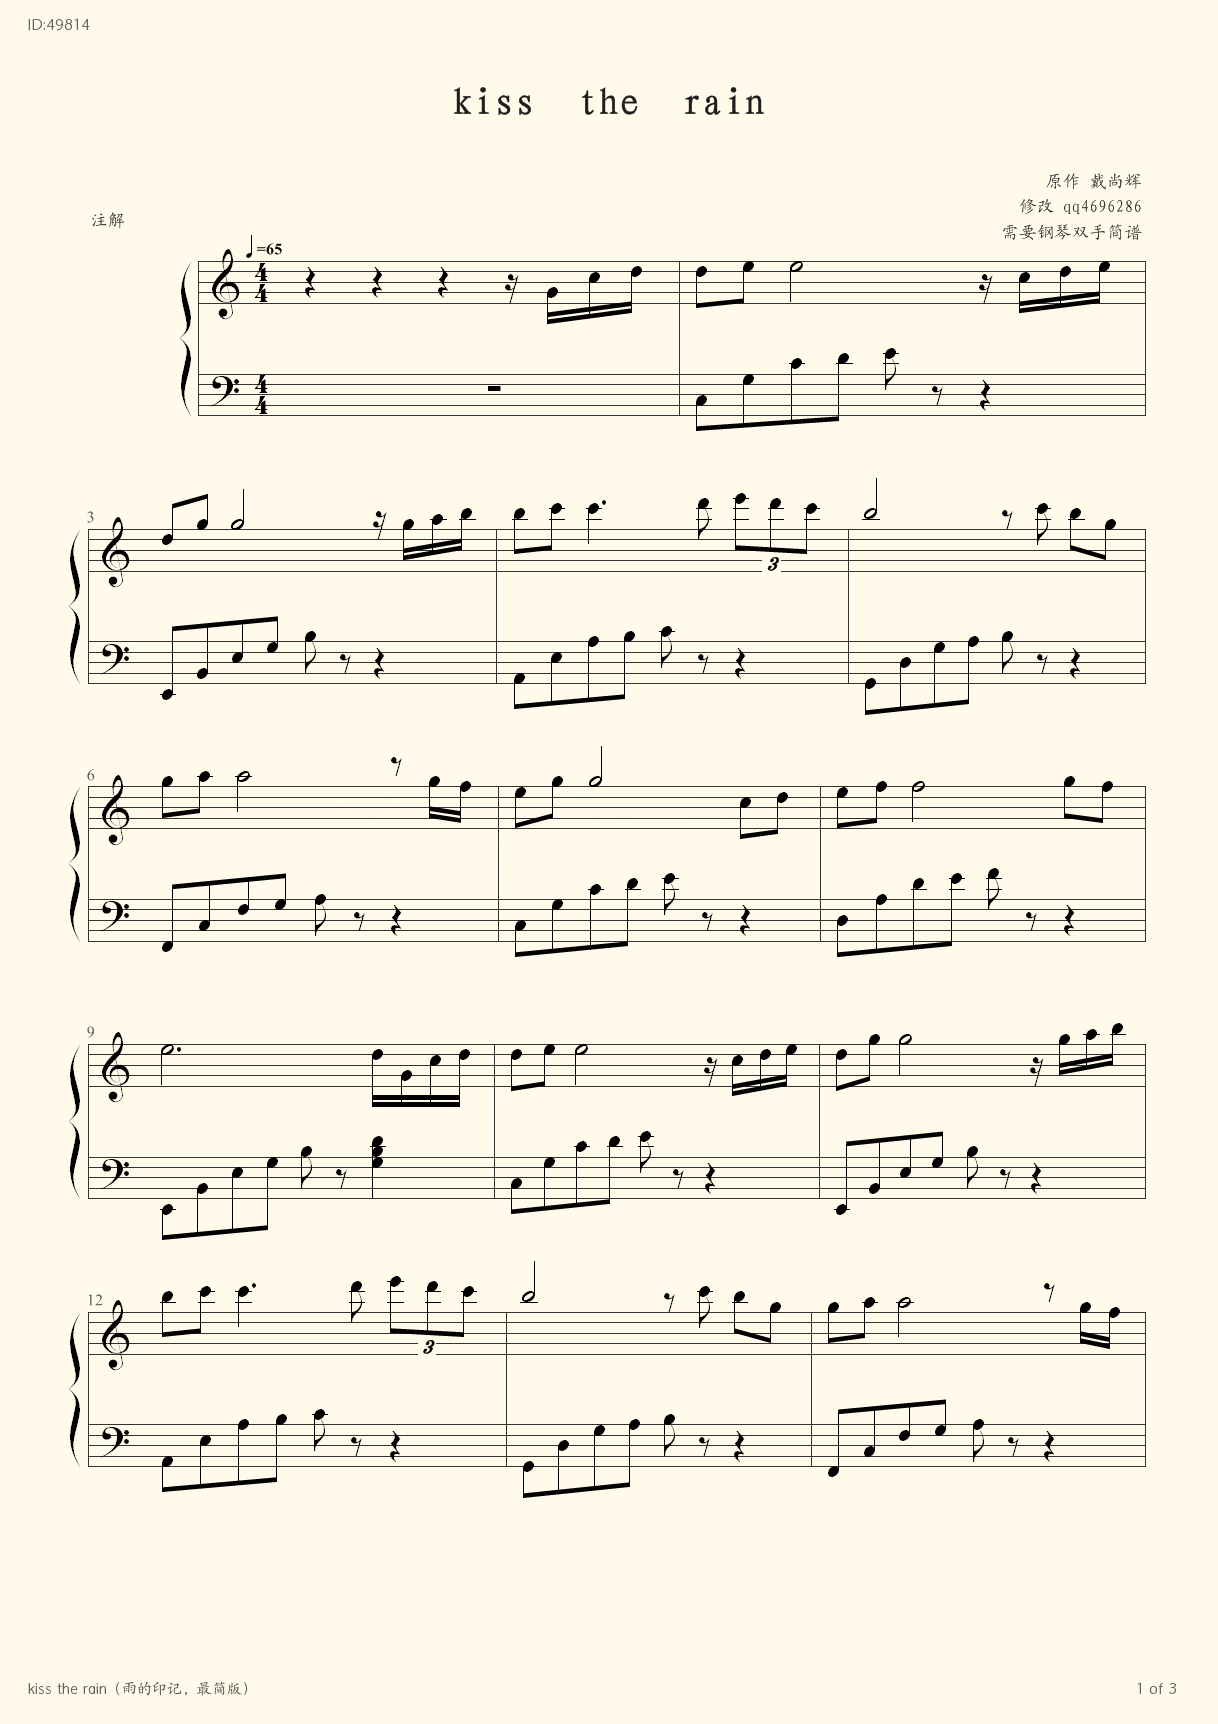 kiss the rain  - yiruma - first page